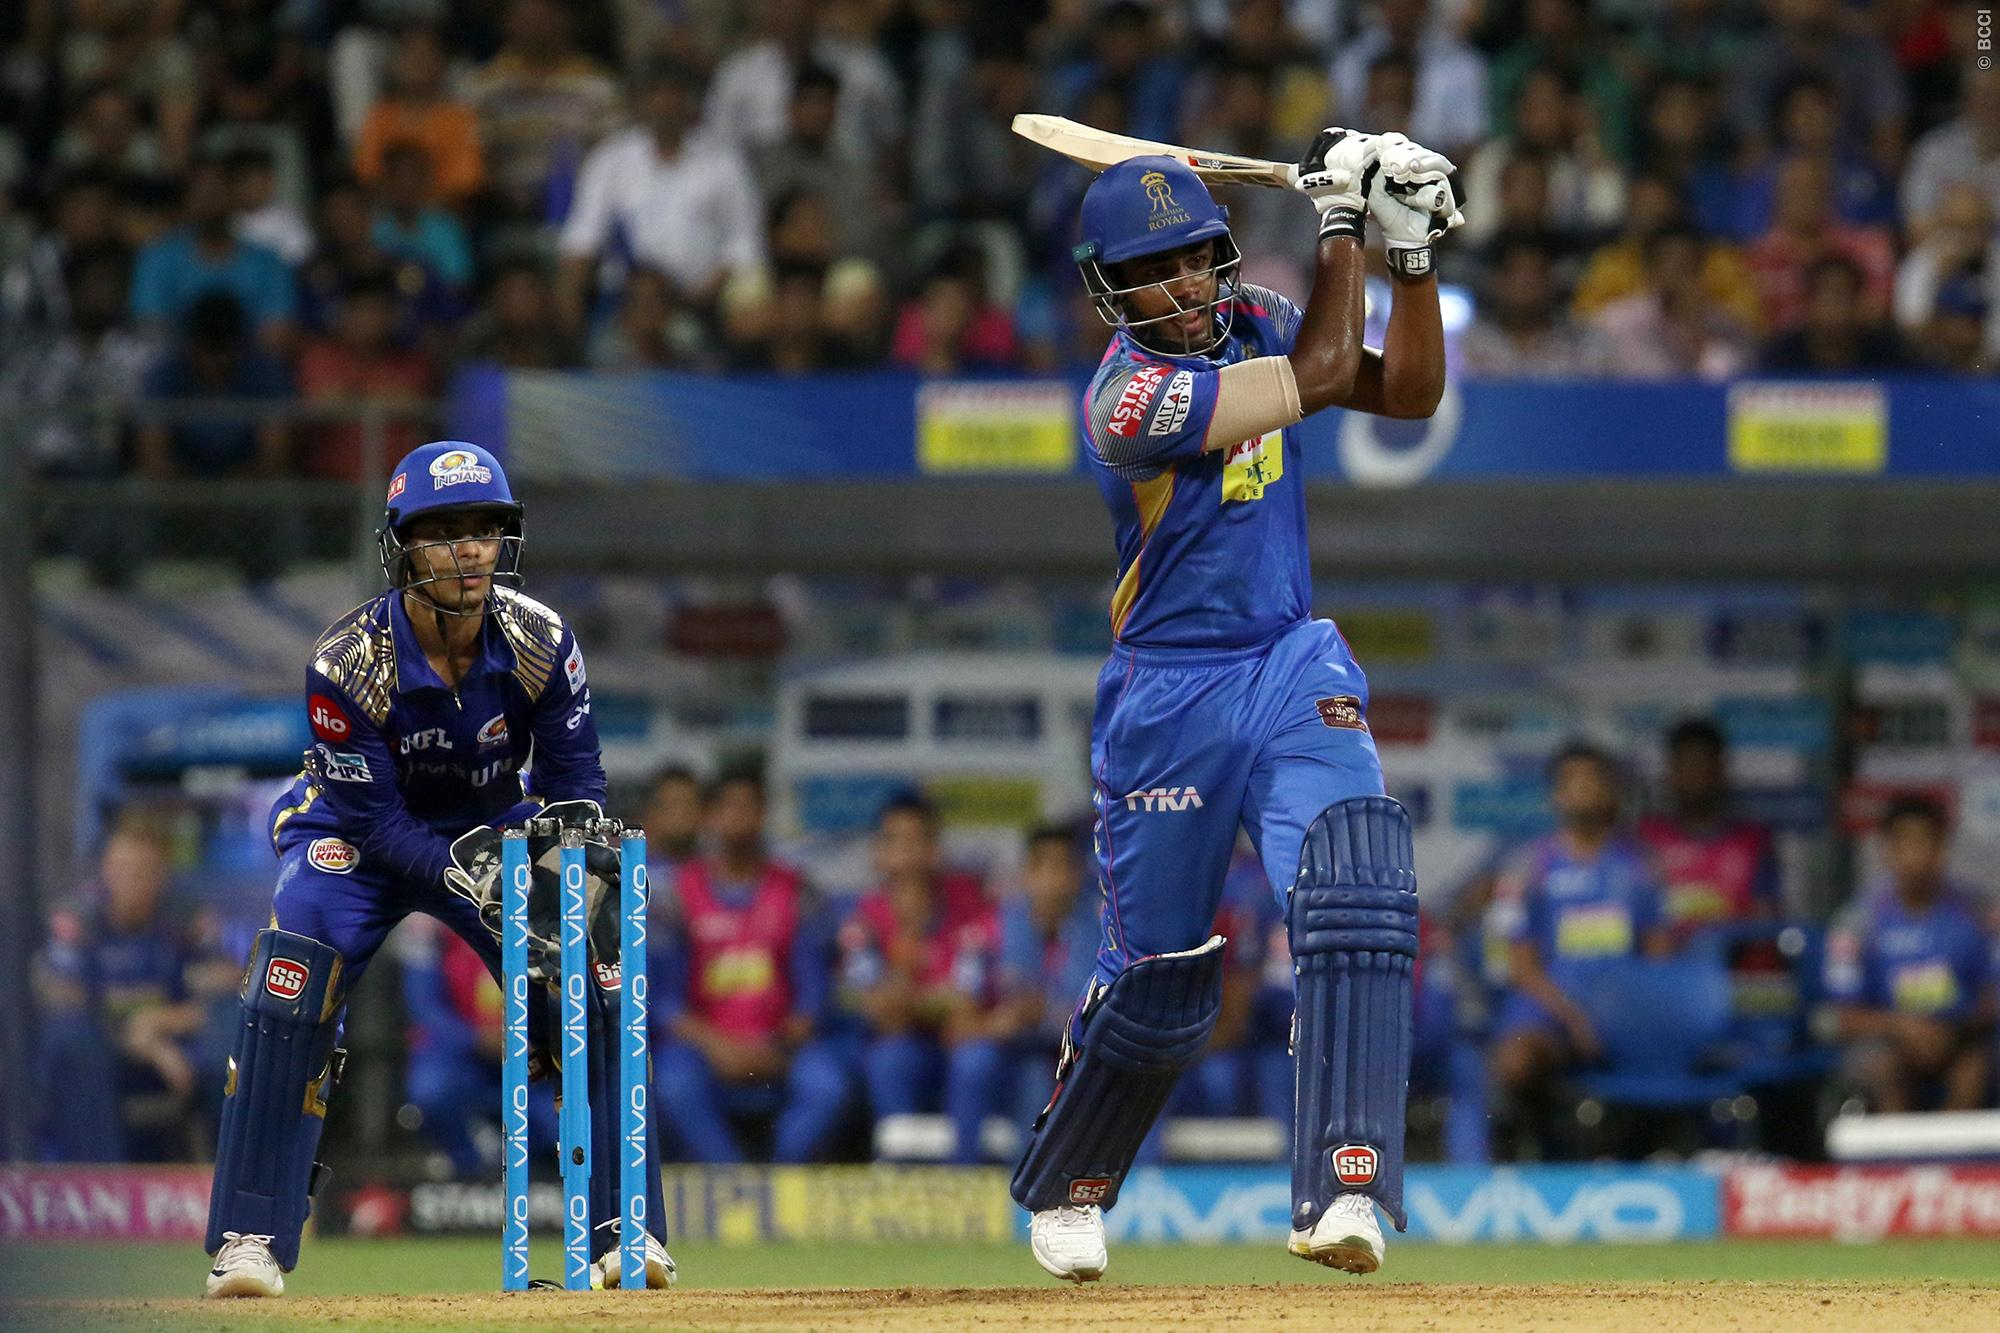 Sanju Samson Likely To Get Back Into Indian Side For The Upcoming Series